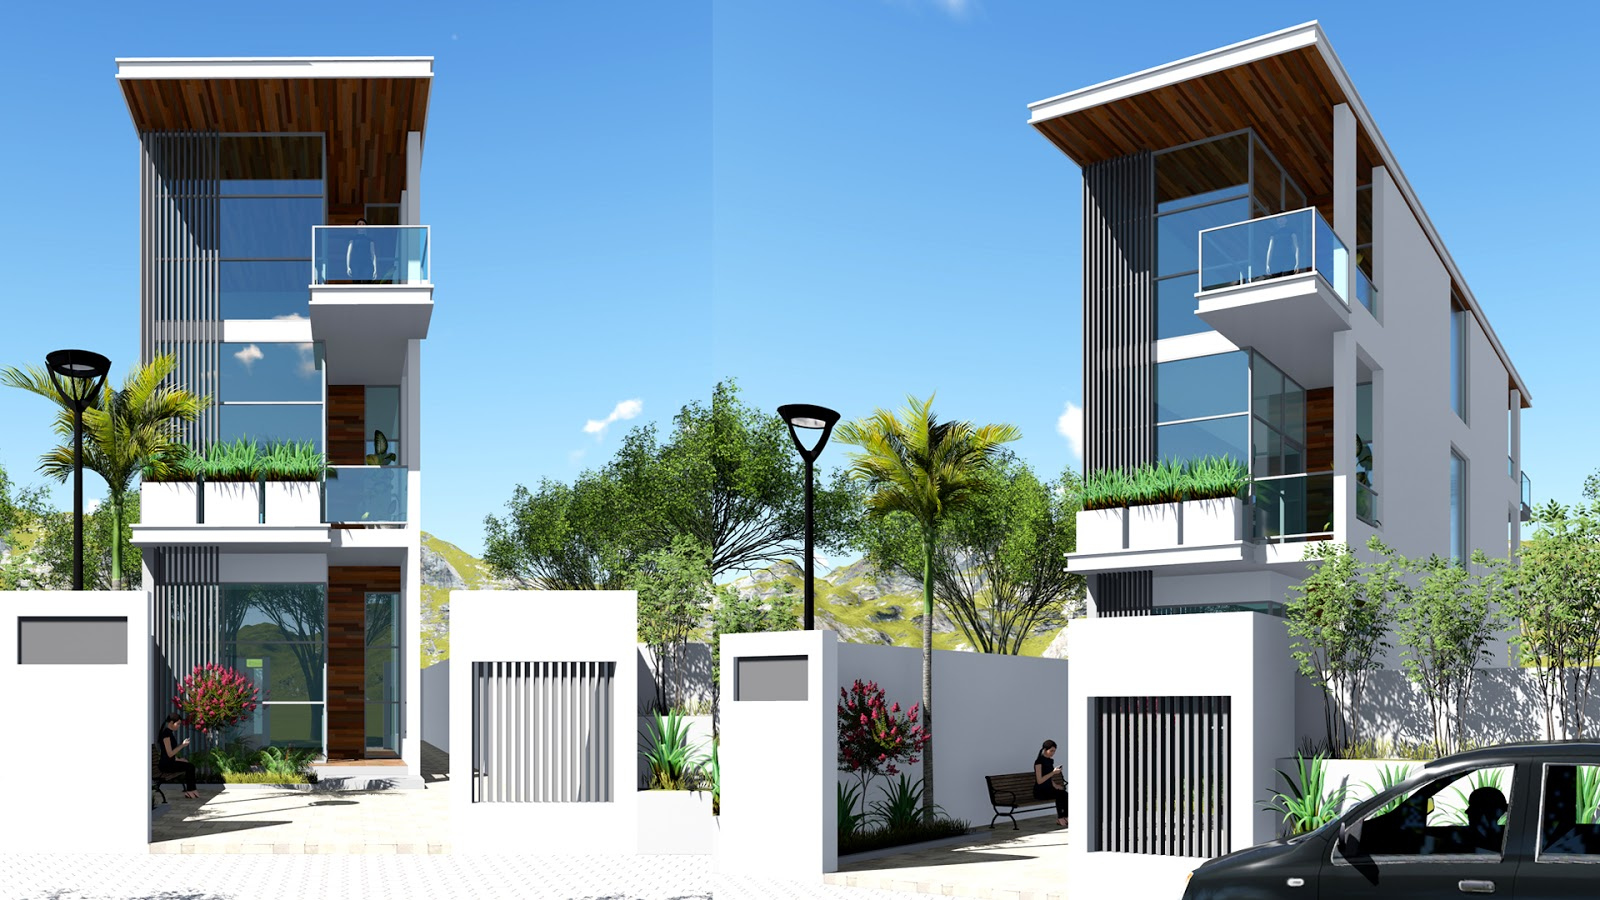 Narrow House Sketchup Exterior Modeling W45m N01 - 28+ Small House Design Front  Images